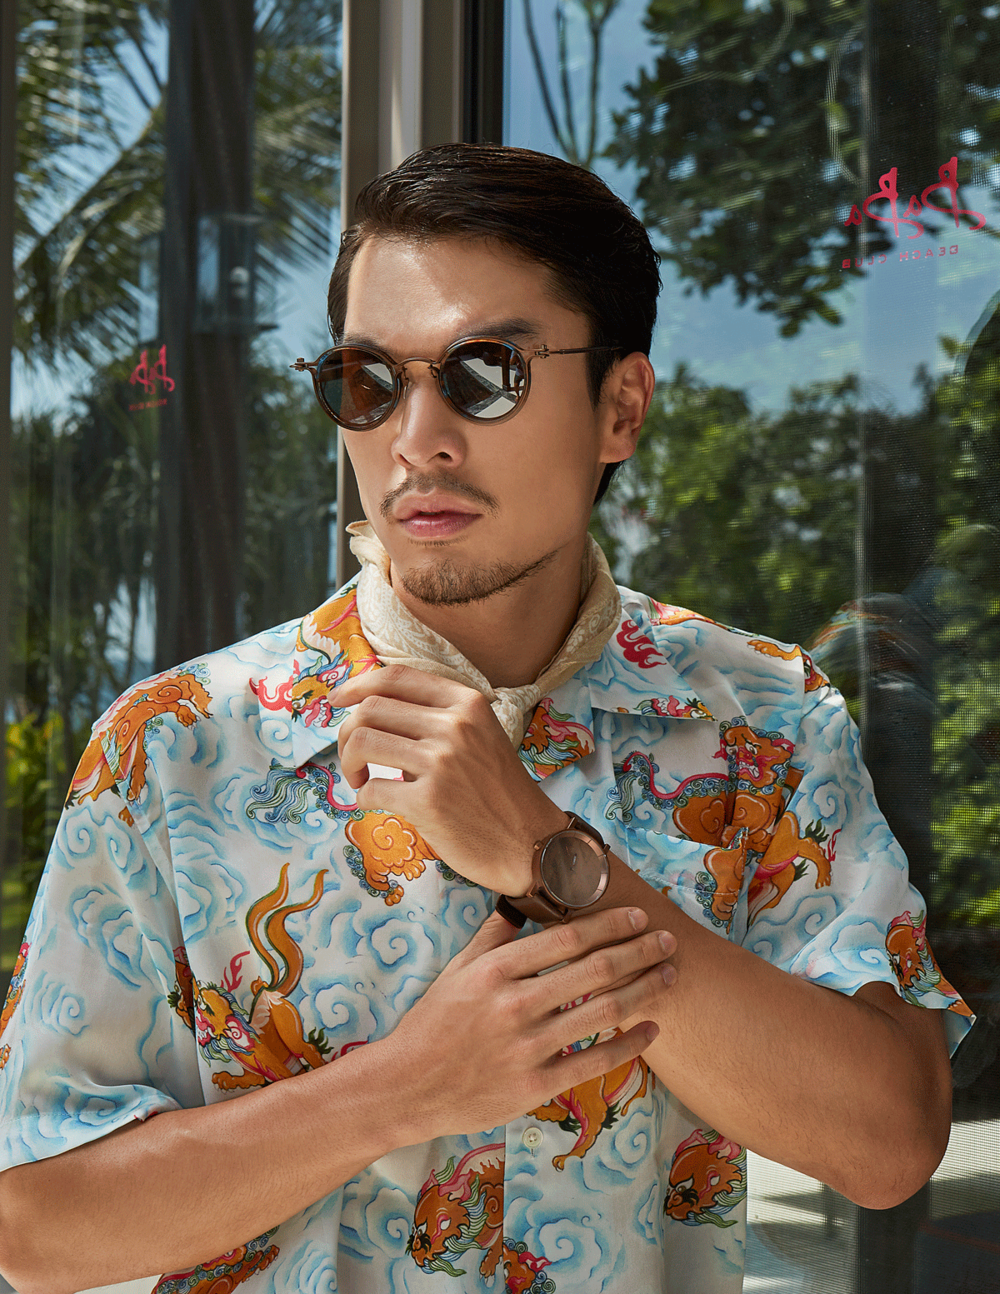 clothes : House of PB / sunglasses : TAVAT / watch : FORREST